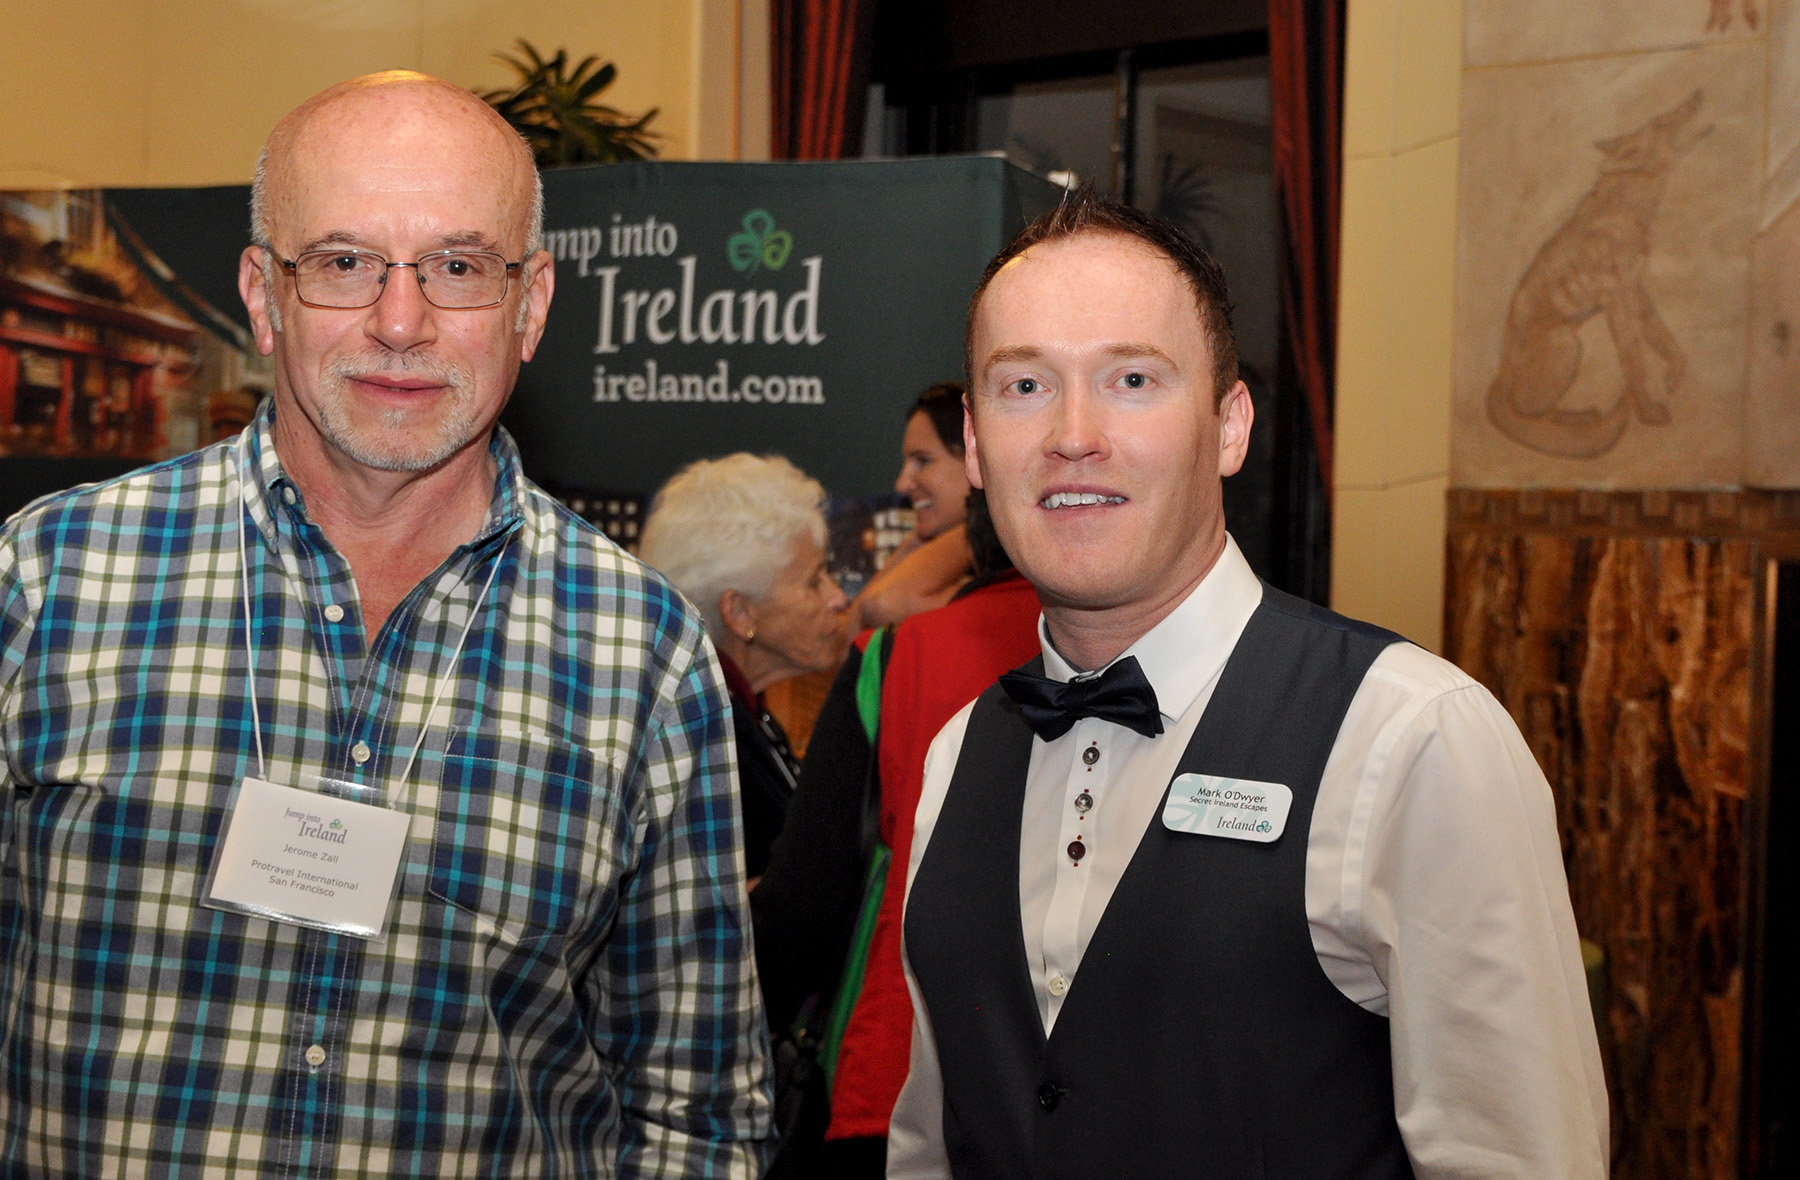 Mark O'Dwyer, Secret Ireland Escapes, based in Killaloe (right), meeting with a travel agent at Tourism Ireland's 'Jump into Ireland' (JITI) event in San Francisco.